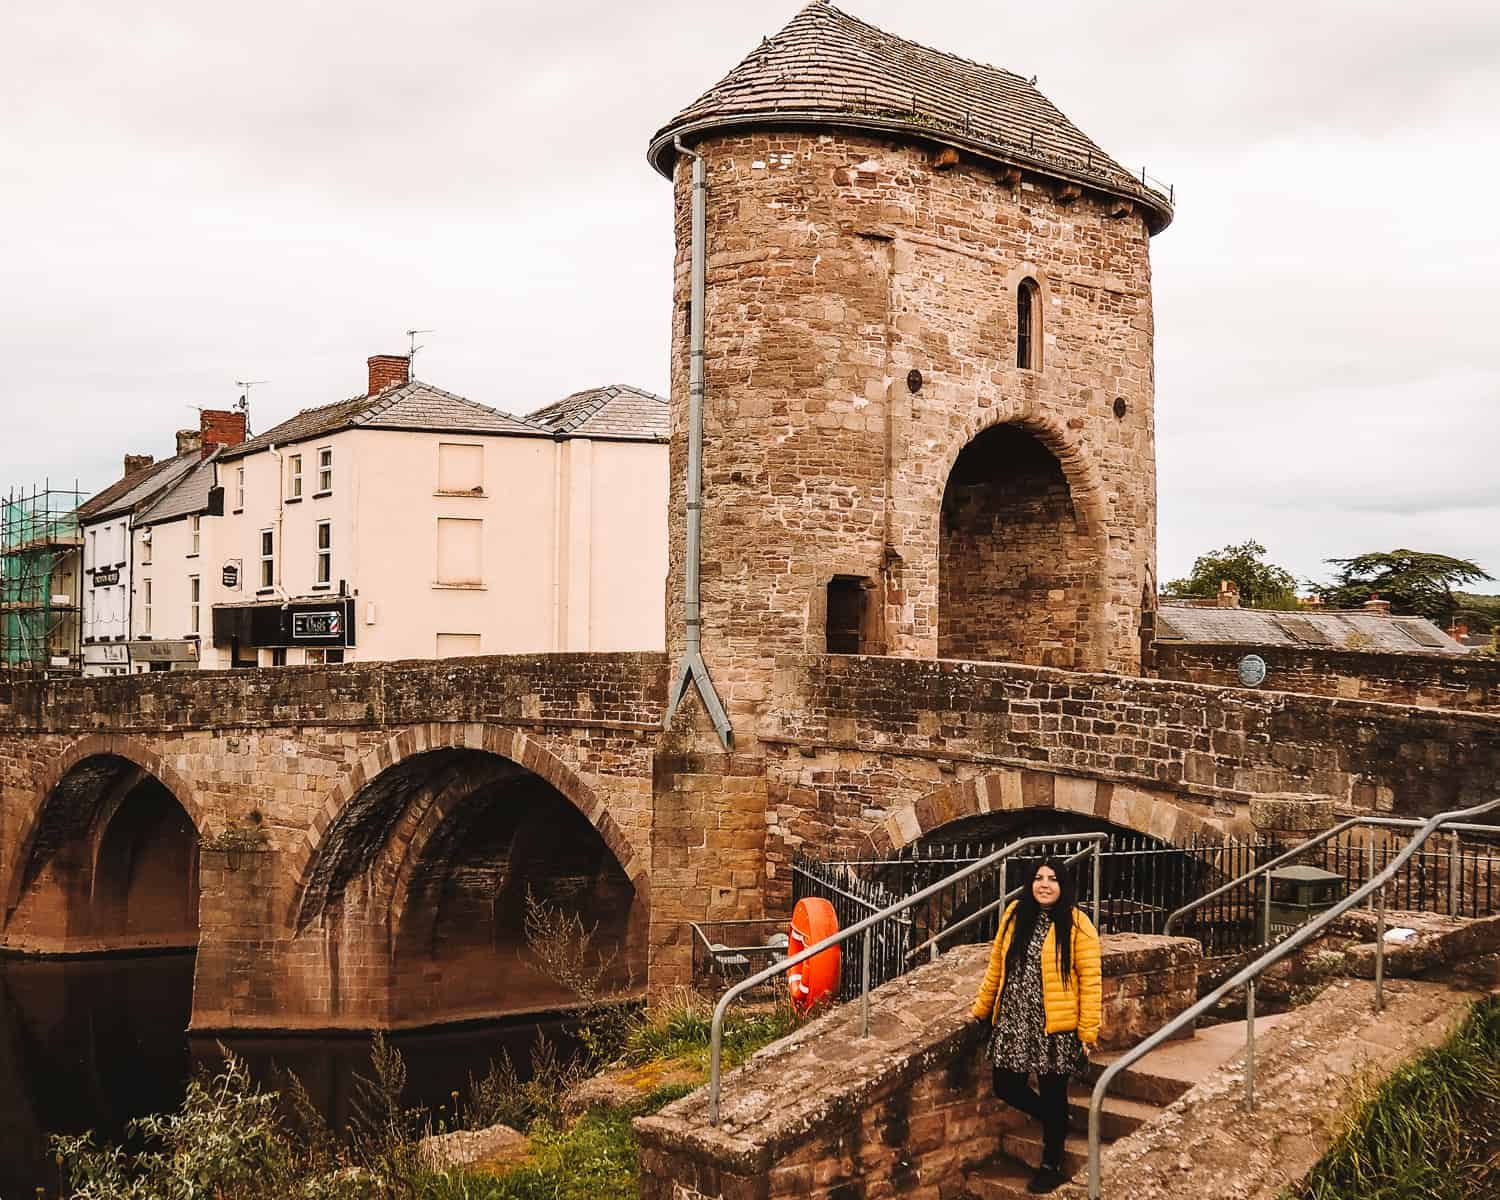 Monnow Bridge and Gate Monmouth Wye Valley Wales